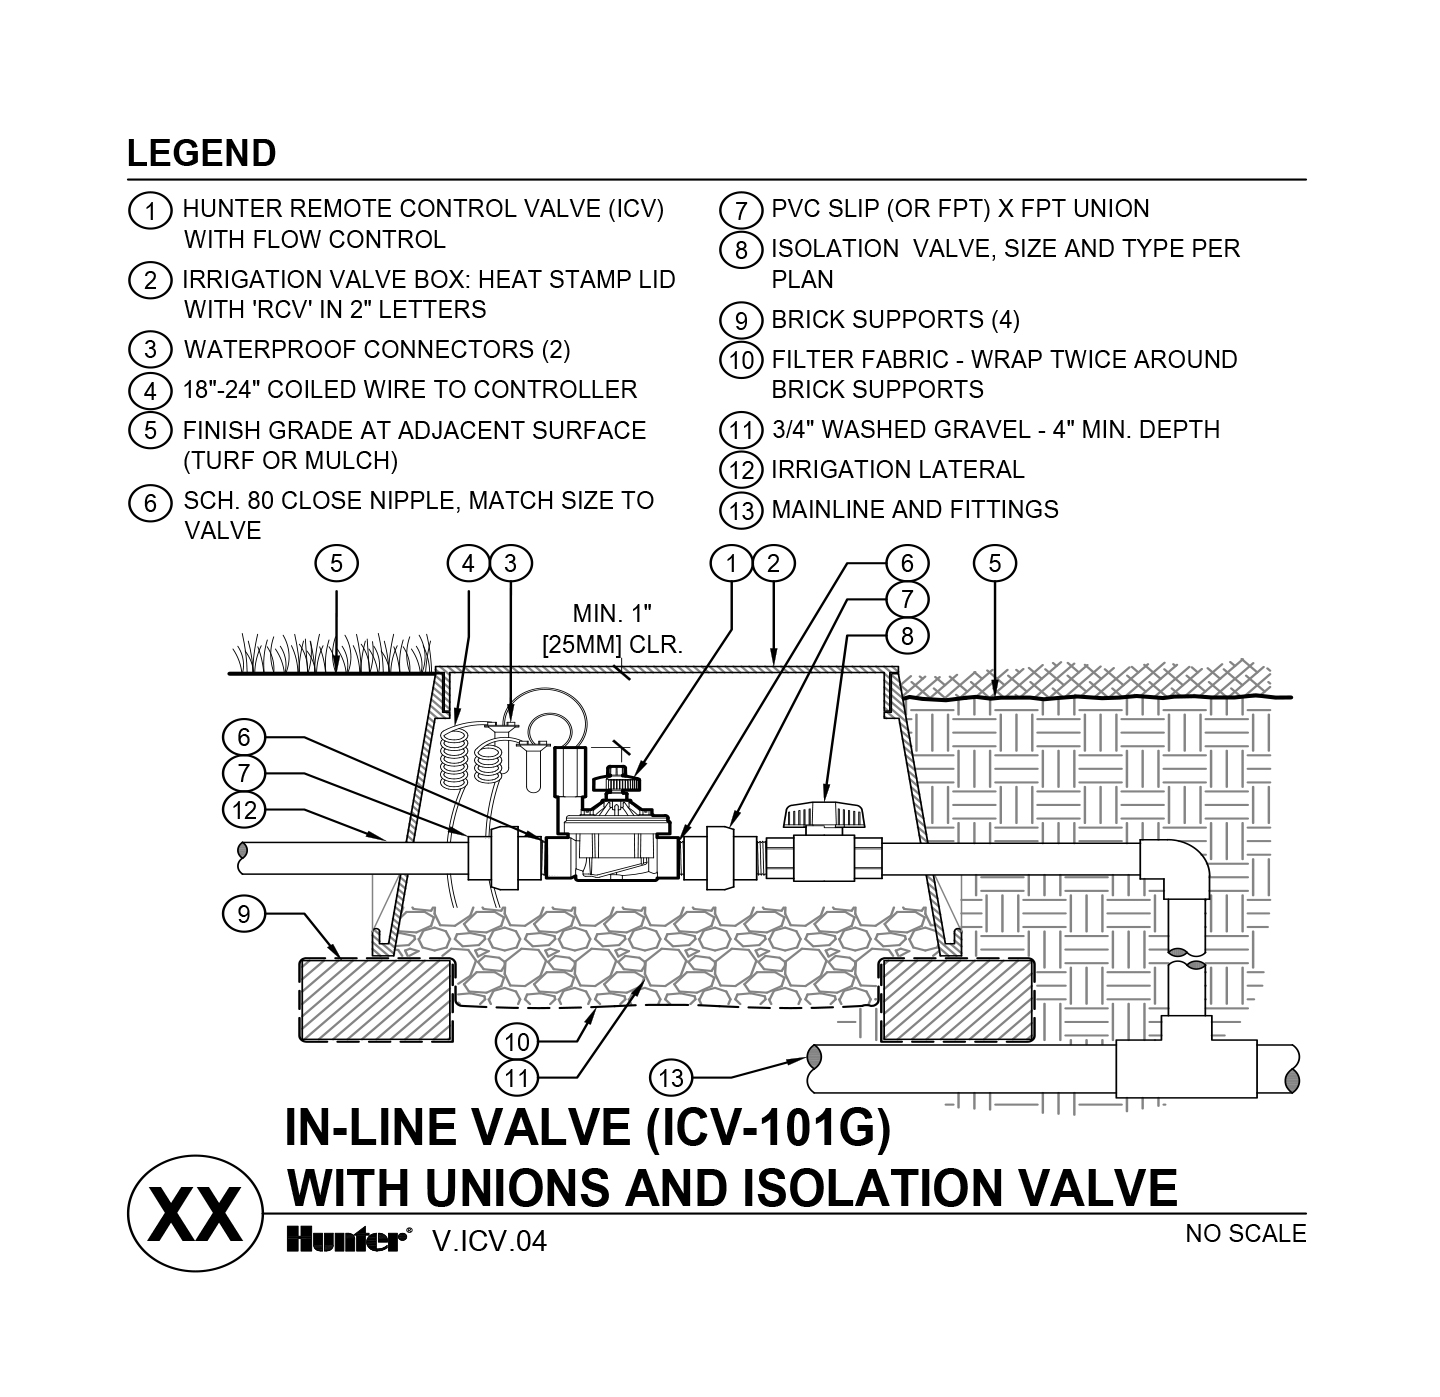 CAD - ICV-101G with unions and shutoff valve